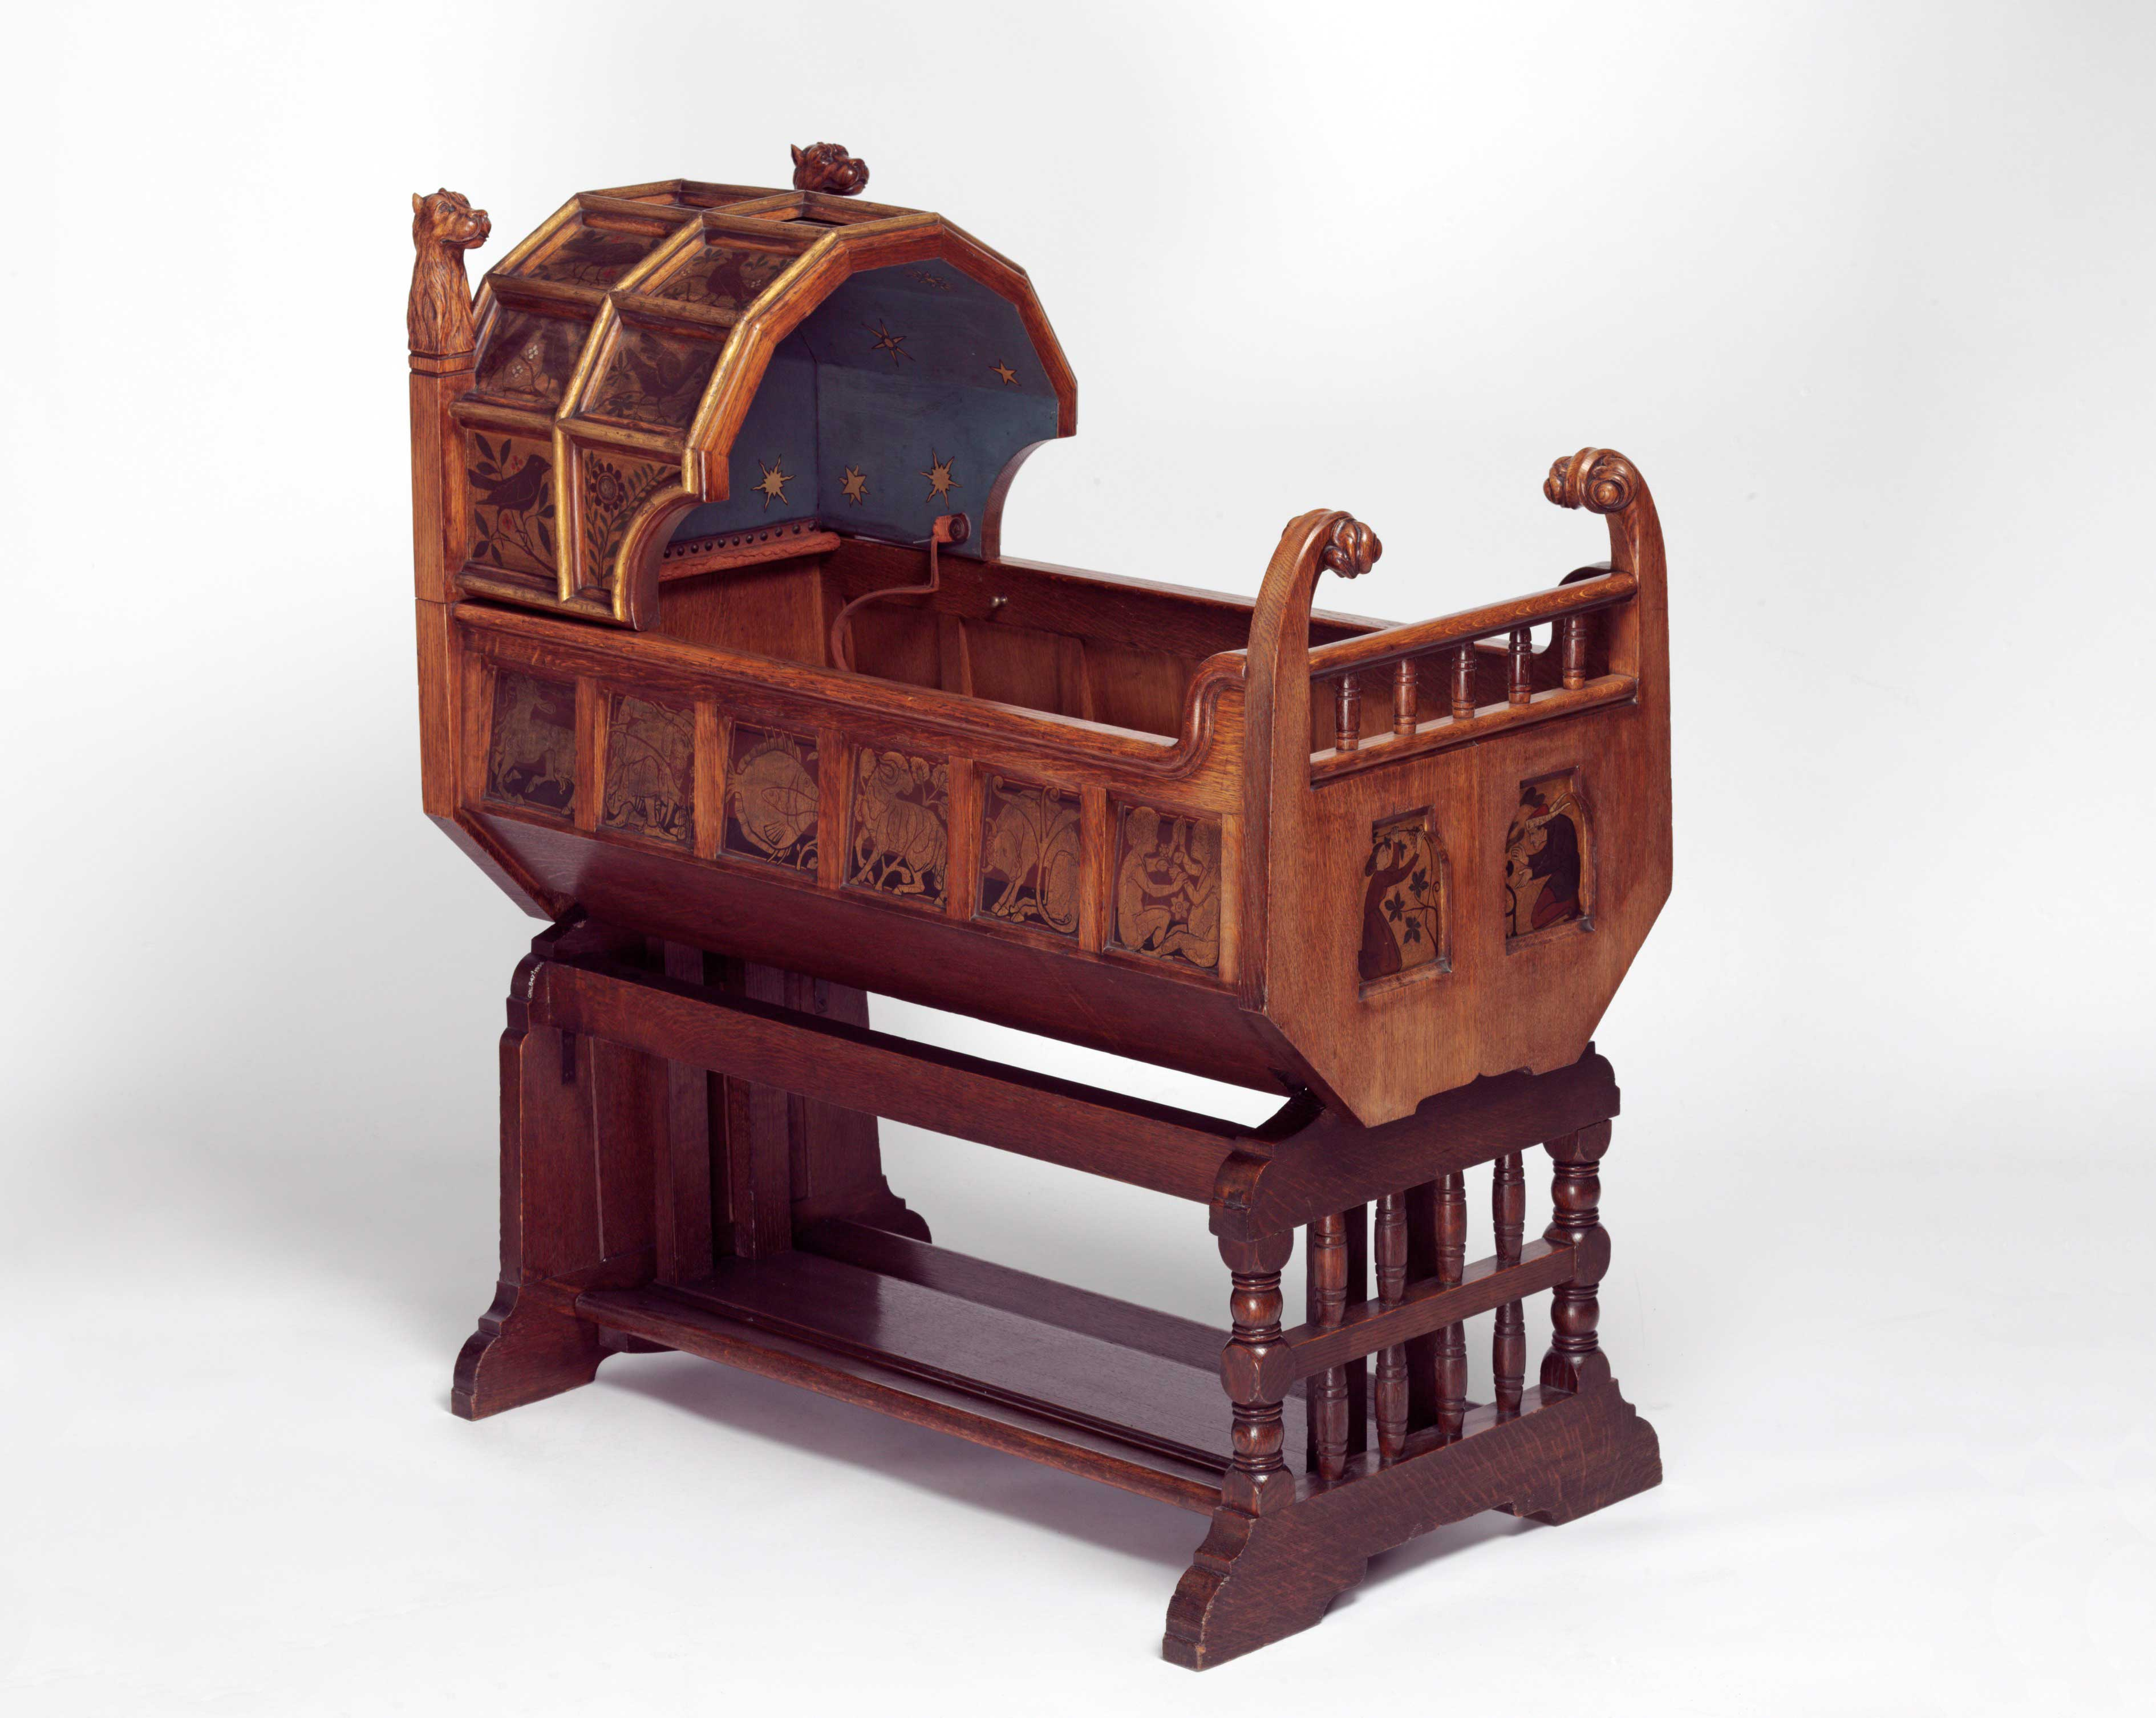 Ancient gothic furniture - Victorian Furniture Revival Styles The Spruce